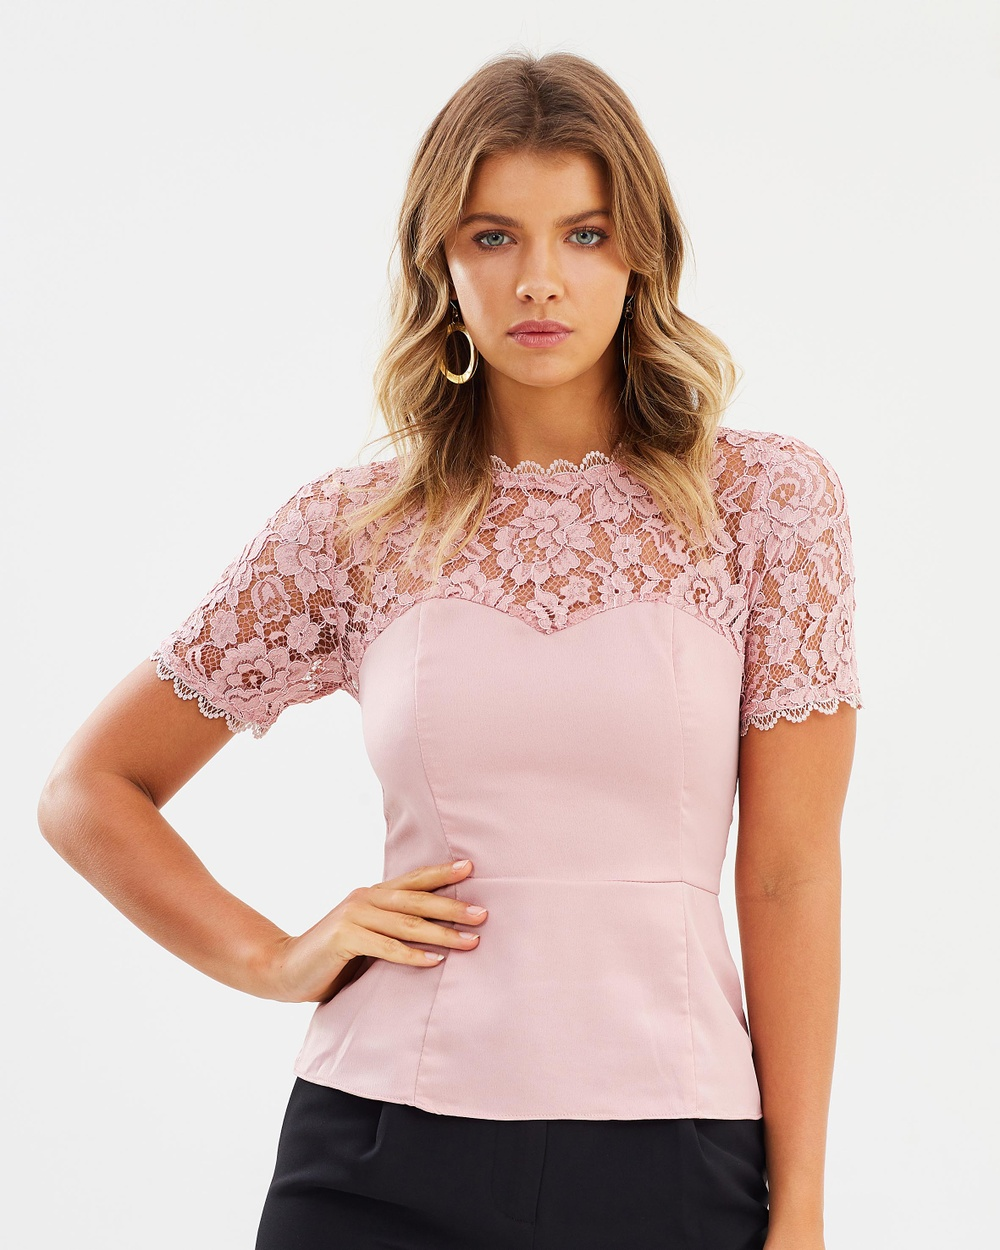 Atmos & Here ICONIC EXCLUSIVE Lainey Lace Contrast Top Tops Dusty Pink ICONIC EXCLUSIVE Lainey Lace Contrast Top